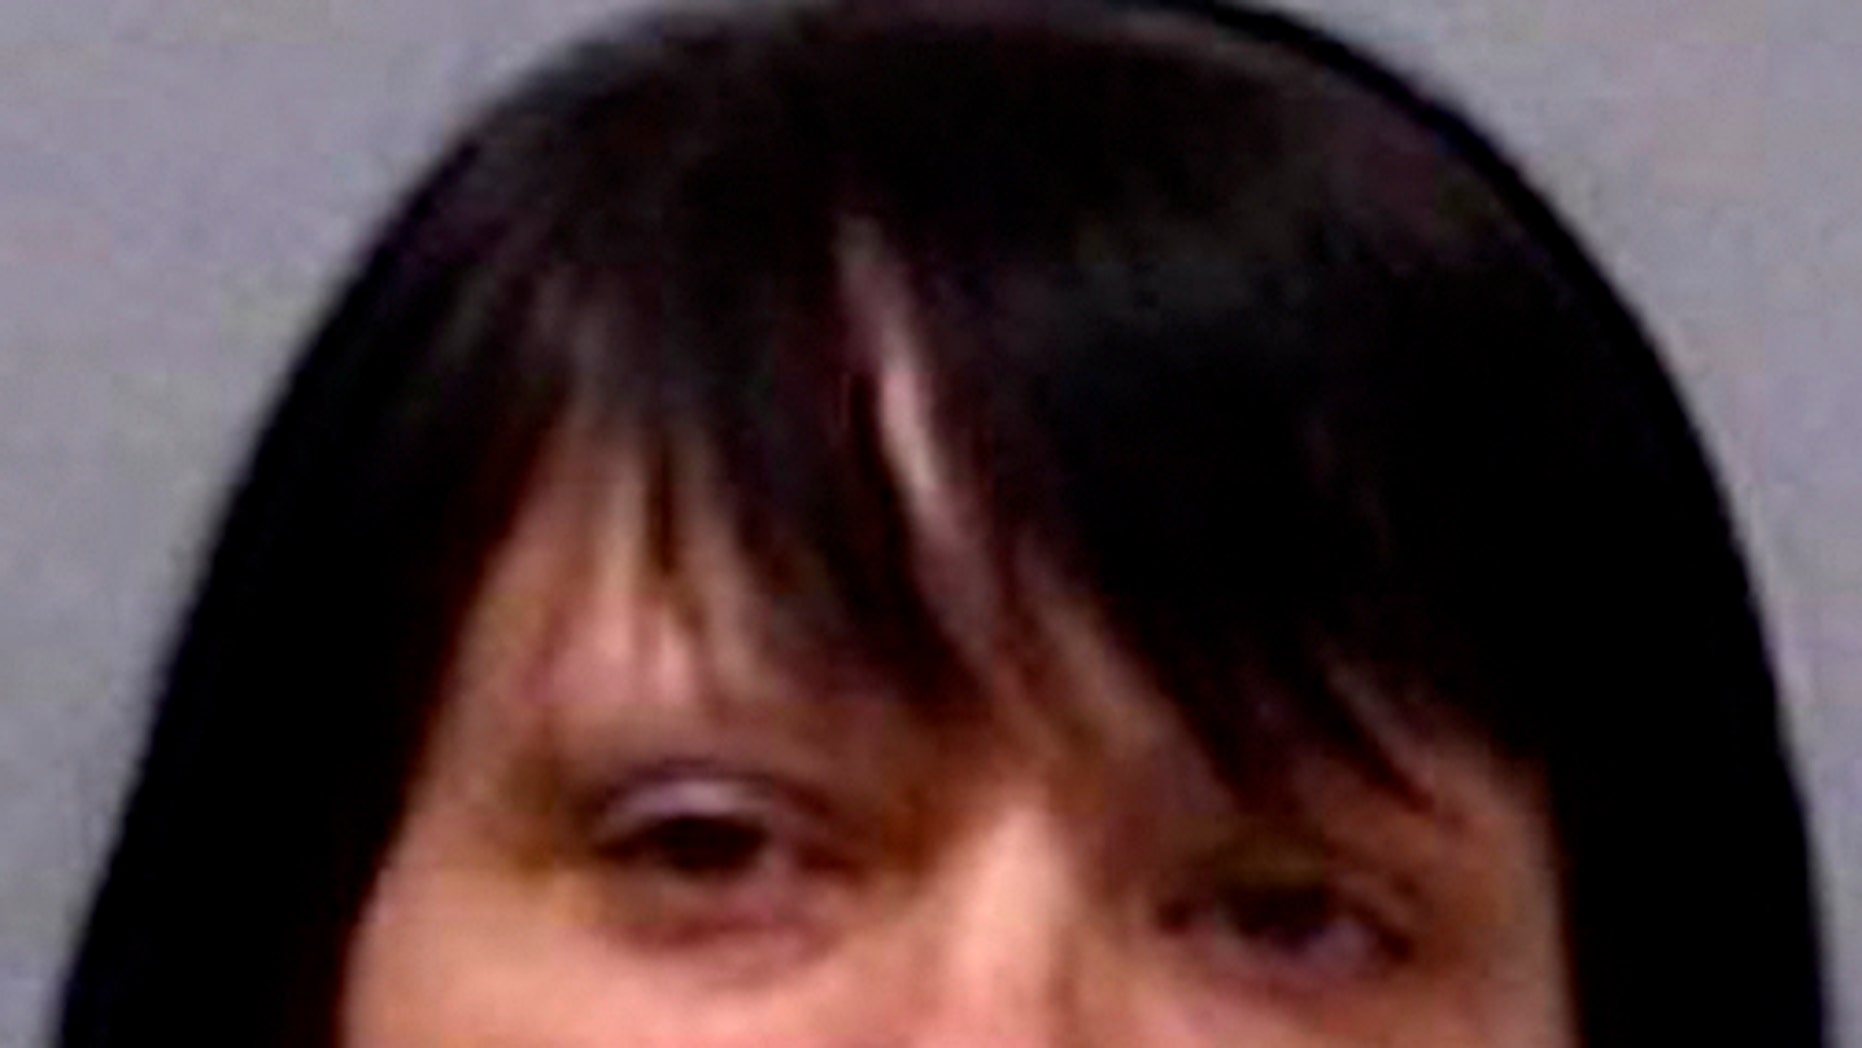 Lorrie Marie Hocker, 42, fled from an inmate van on the way to a work assignment, according to the Oregon Department of Correction.